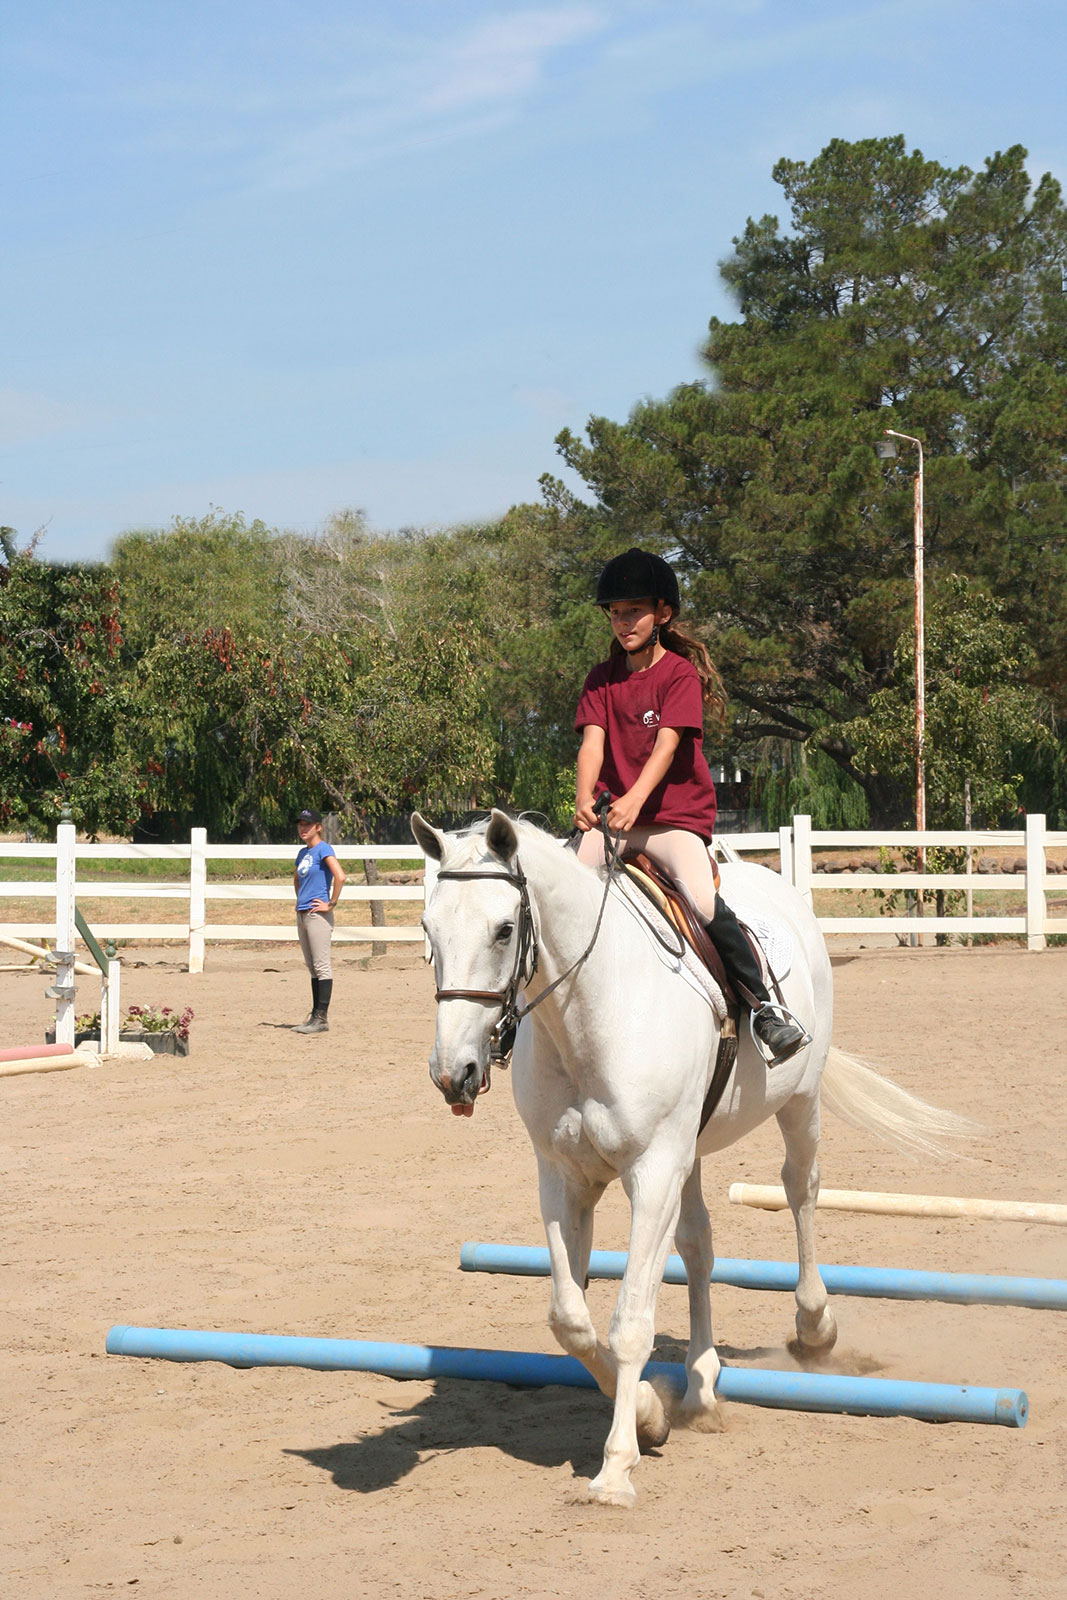 Trotting over Poles